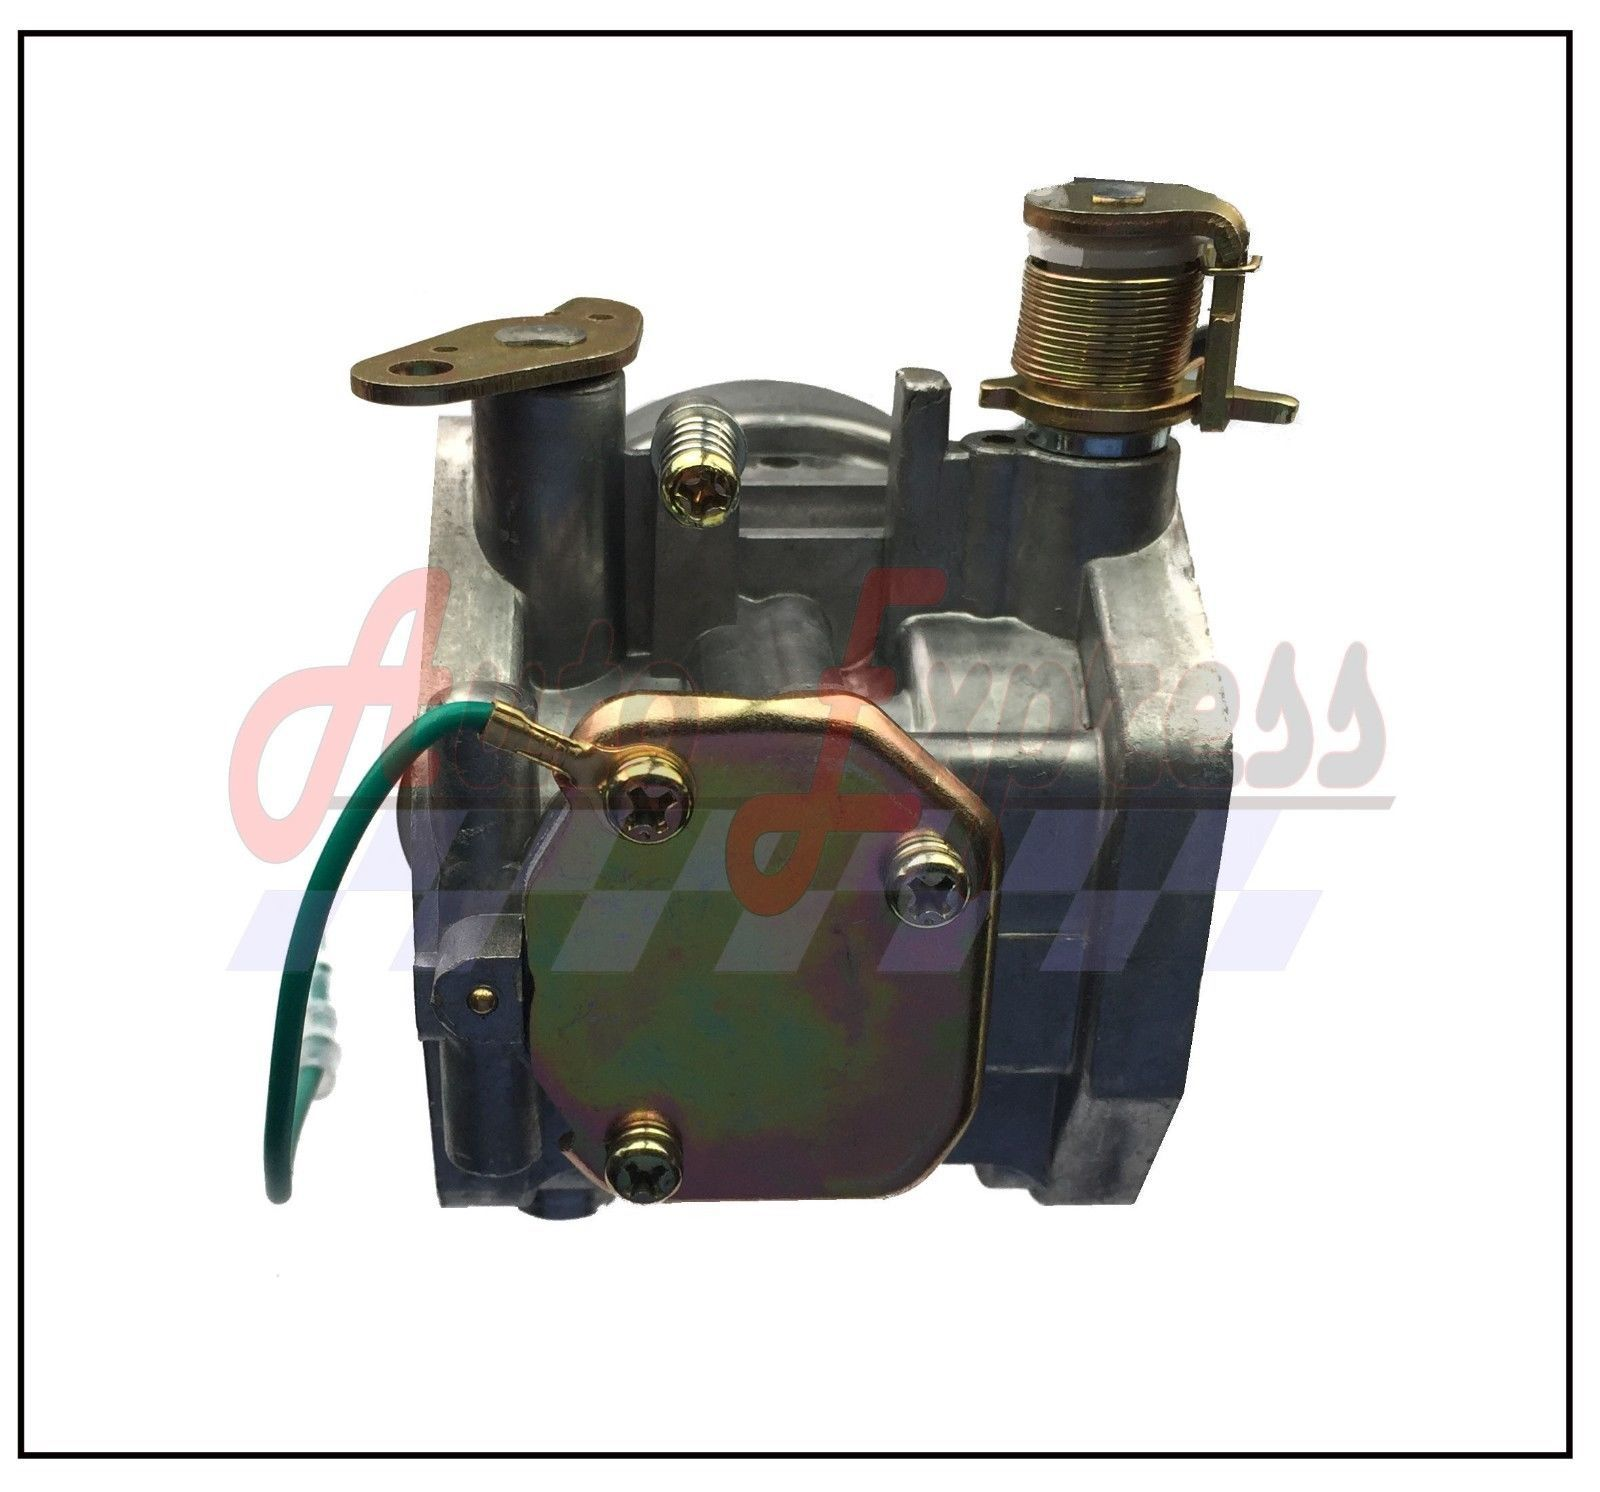 Carburetor Fits John Deere 60 Skid Steer Nikki Carb Tune Up Kit image 3